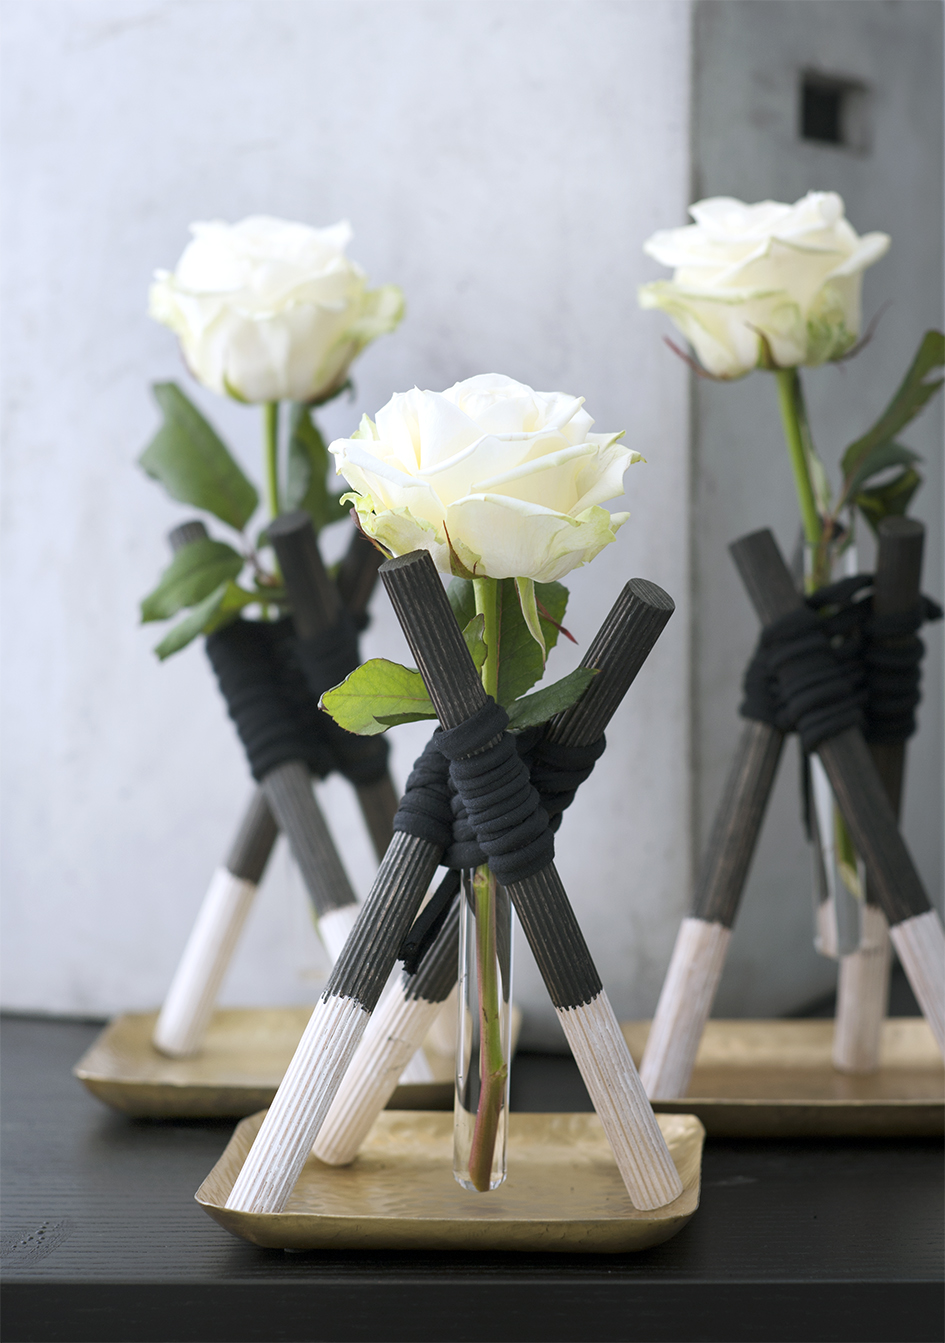 rose vases de luxe funny how flowers do that. Black Bedroom Furniture Sets. Home Design Ideas